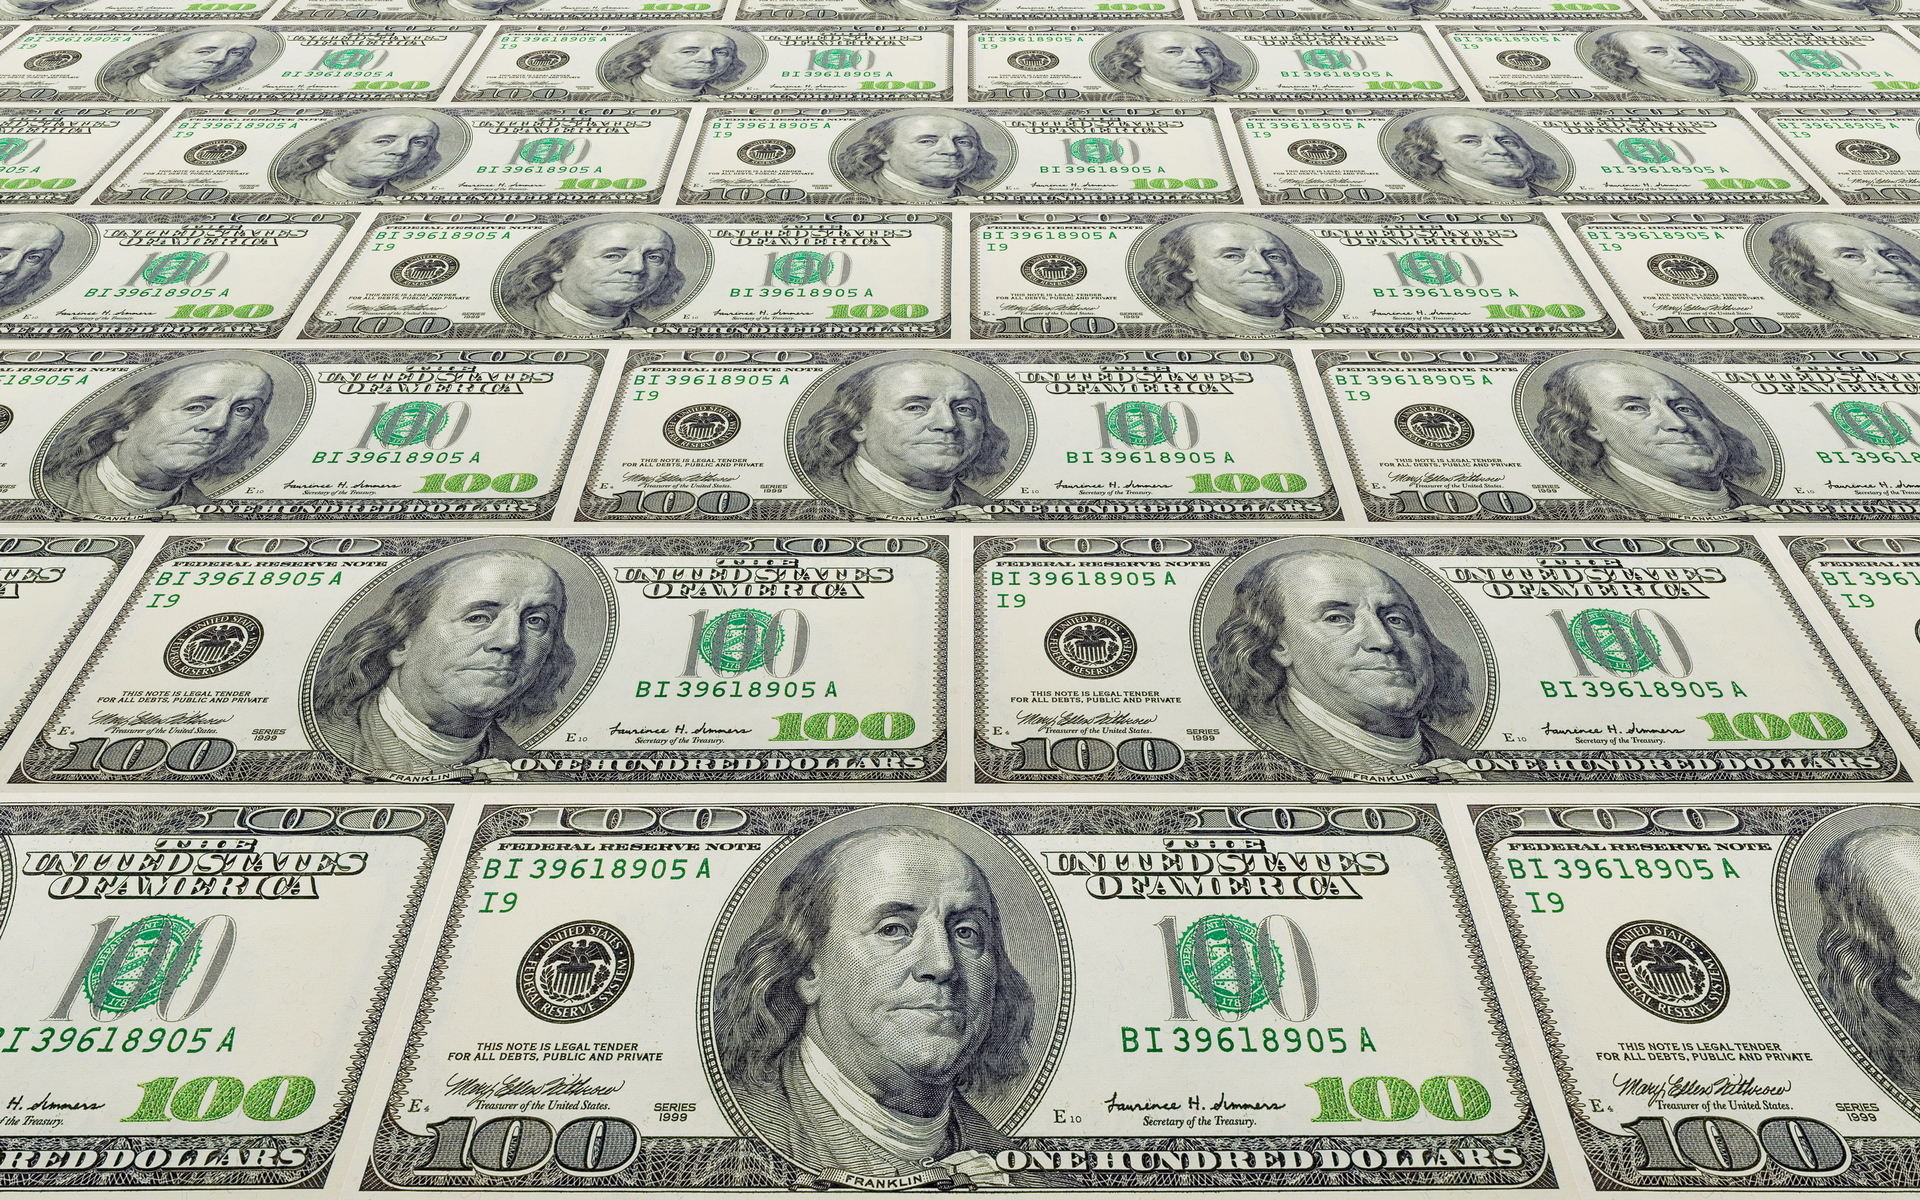 - Money hd wallpapers 1080p ...